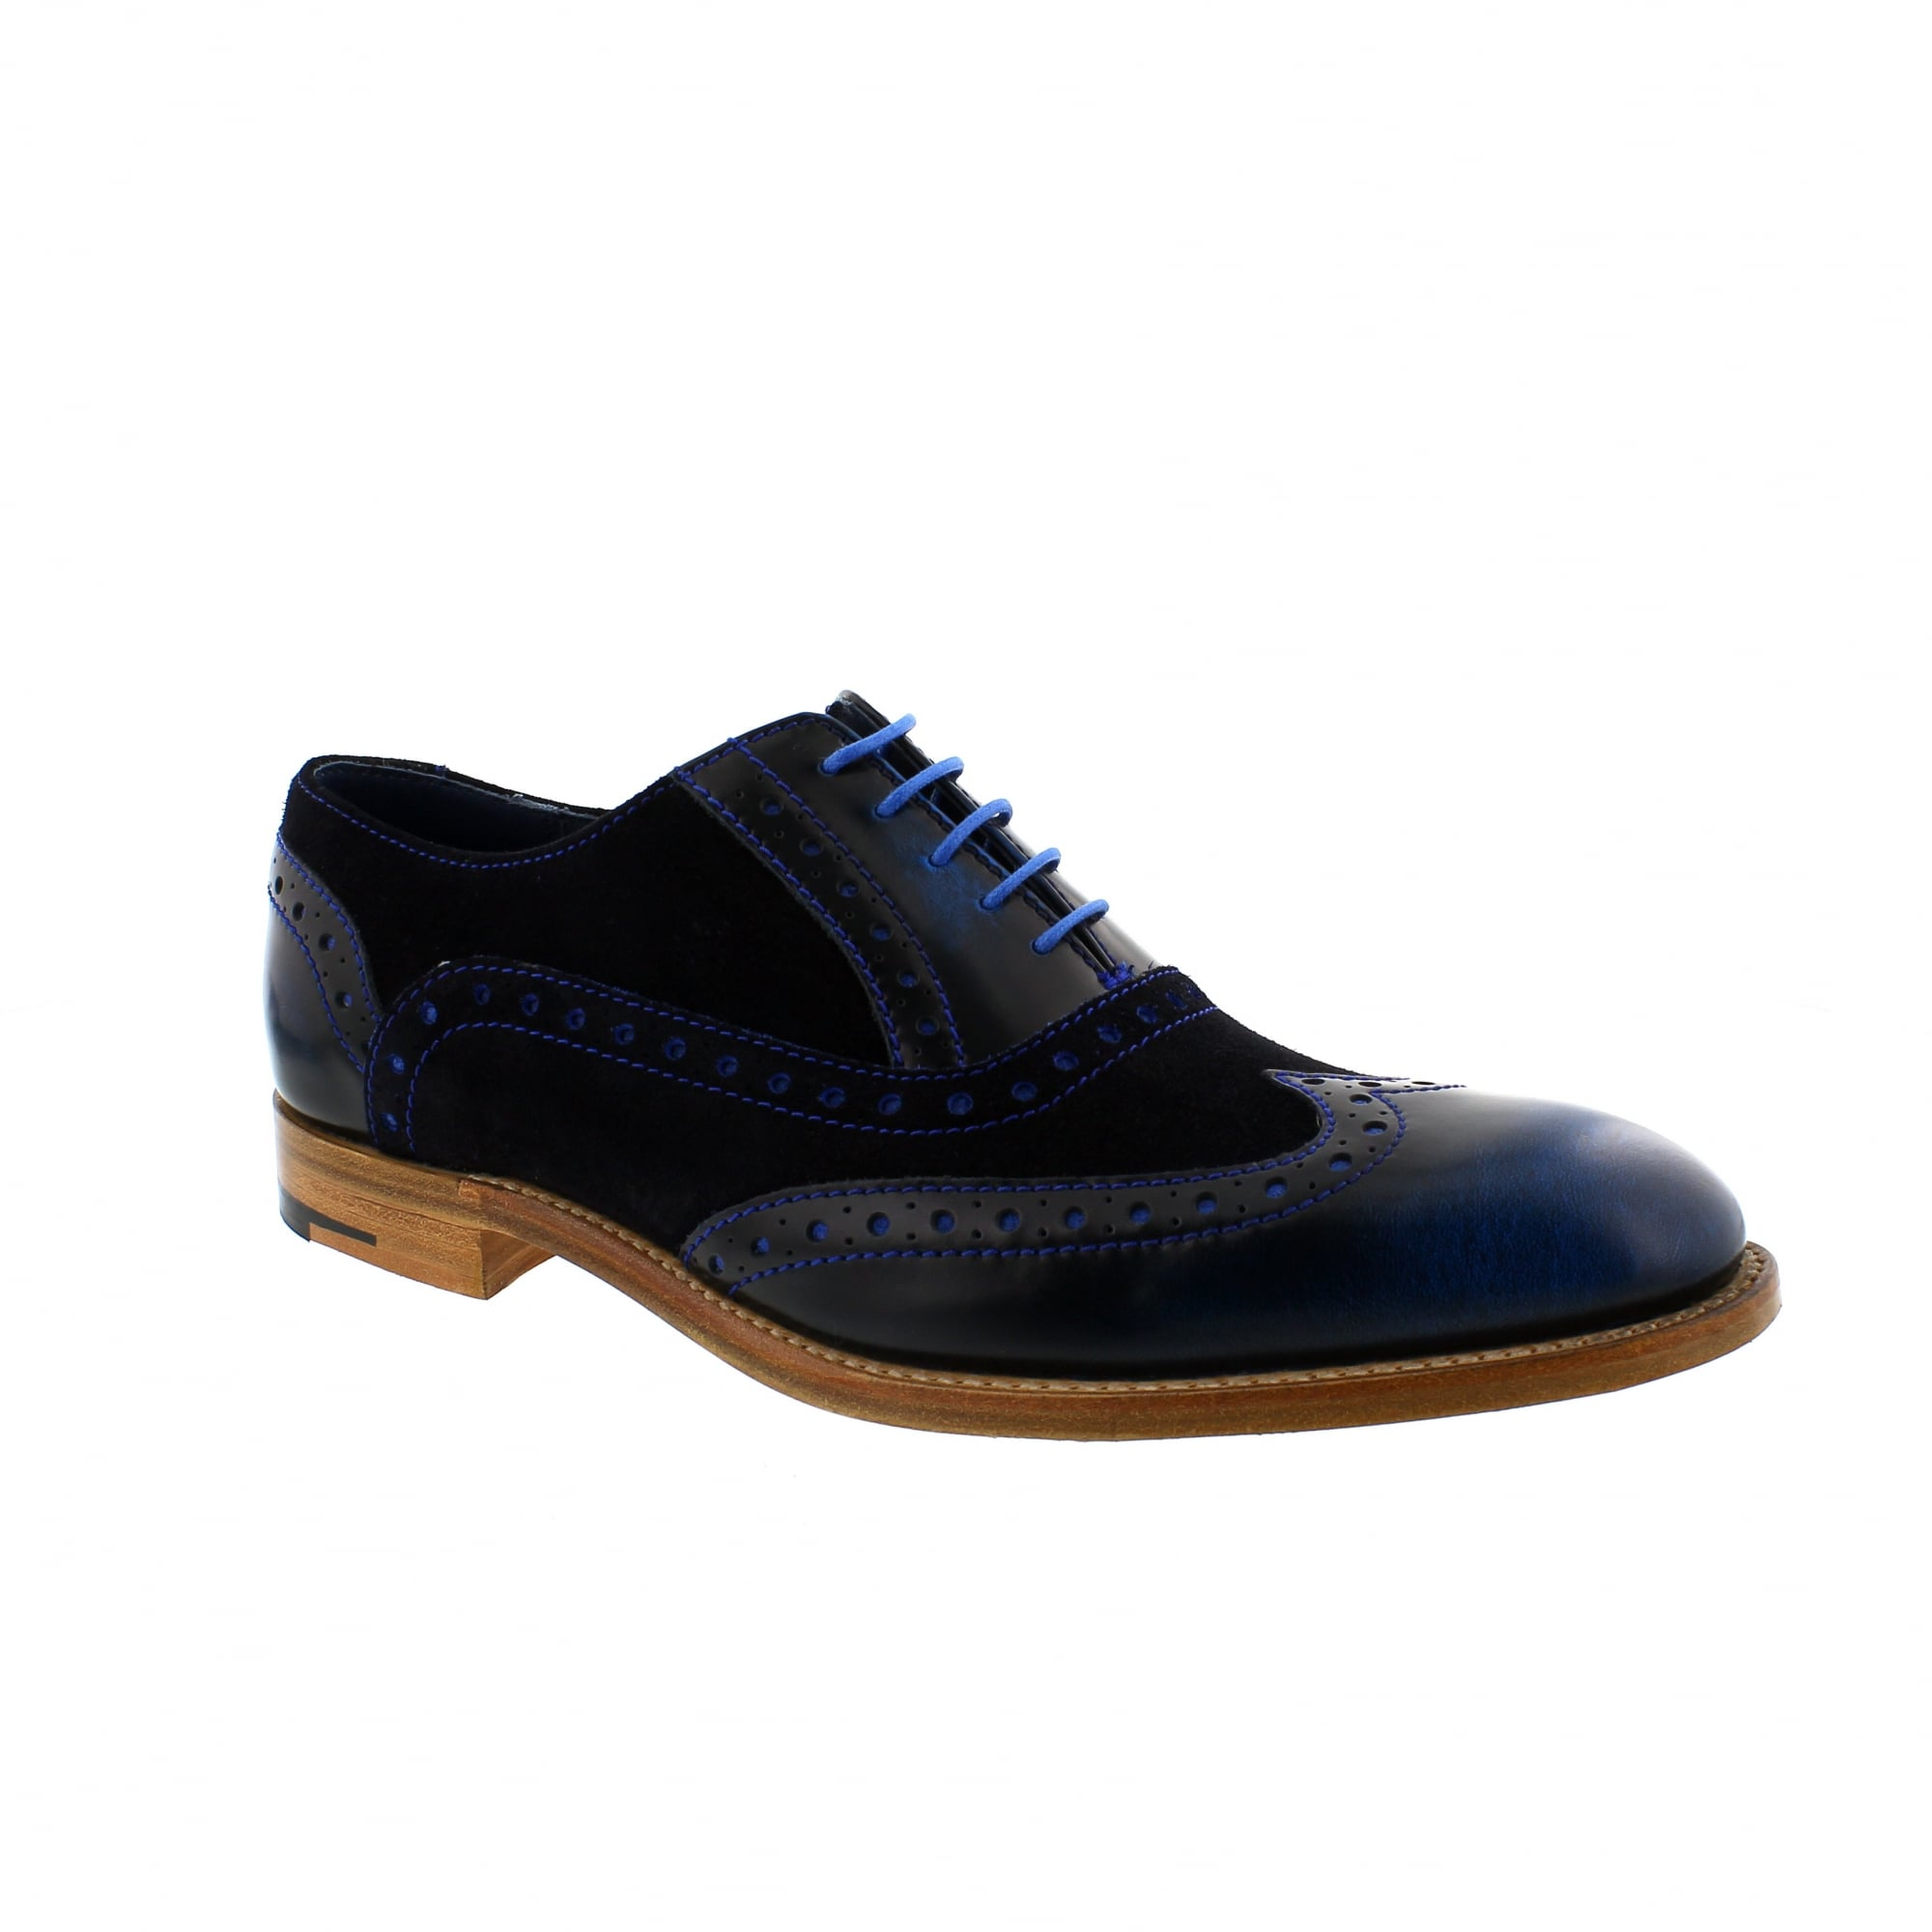 6429714c9b9ce Barker Grant F | 3372FW13 - Mens from Rogerson Shoes UK